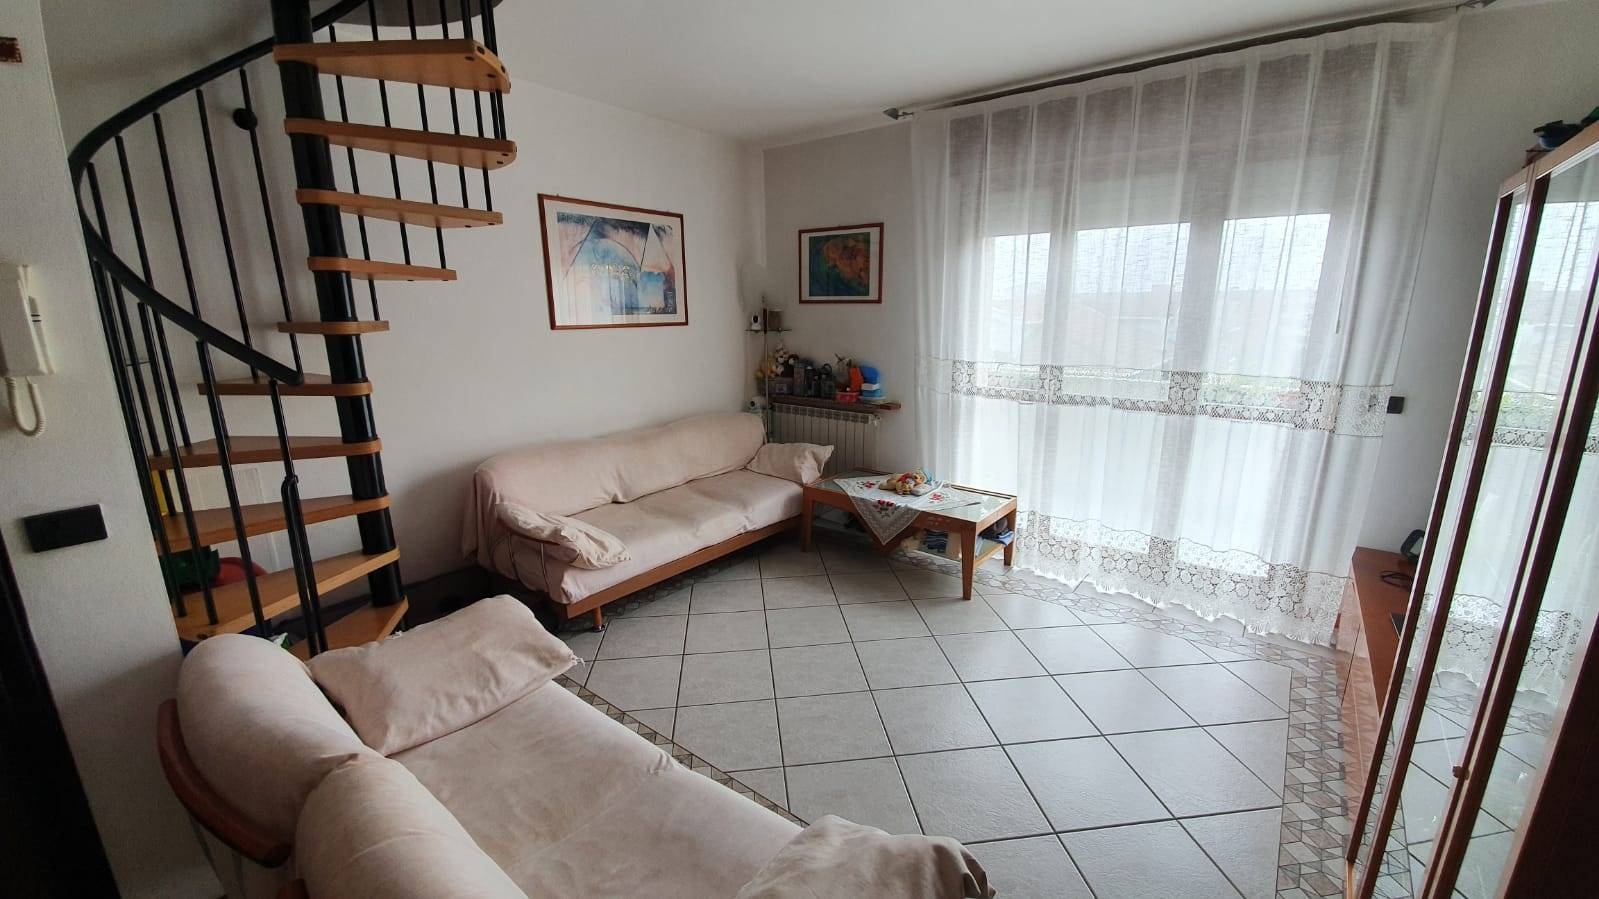 SOTTOMARINA, CHIOGGIA, Apartment for sale of 92 Sq. mt., Good condition, Heating Individual heating system, Energetic class: G, placed at 4° on 4,